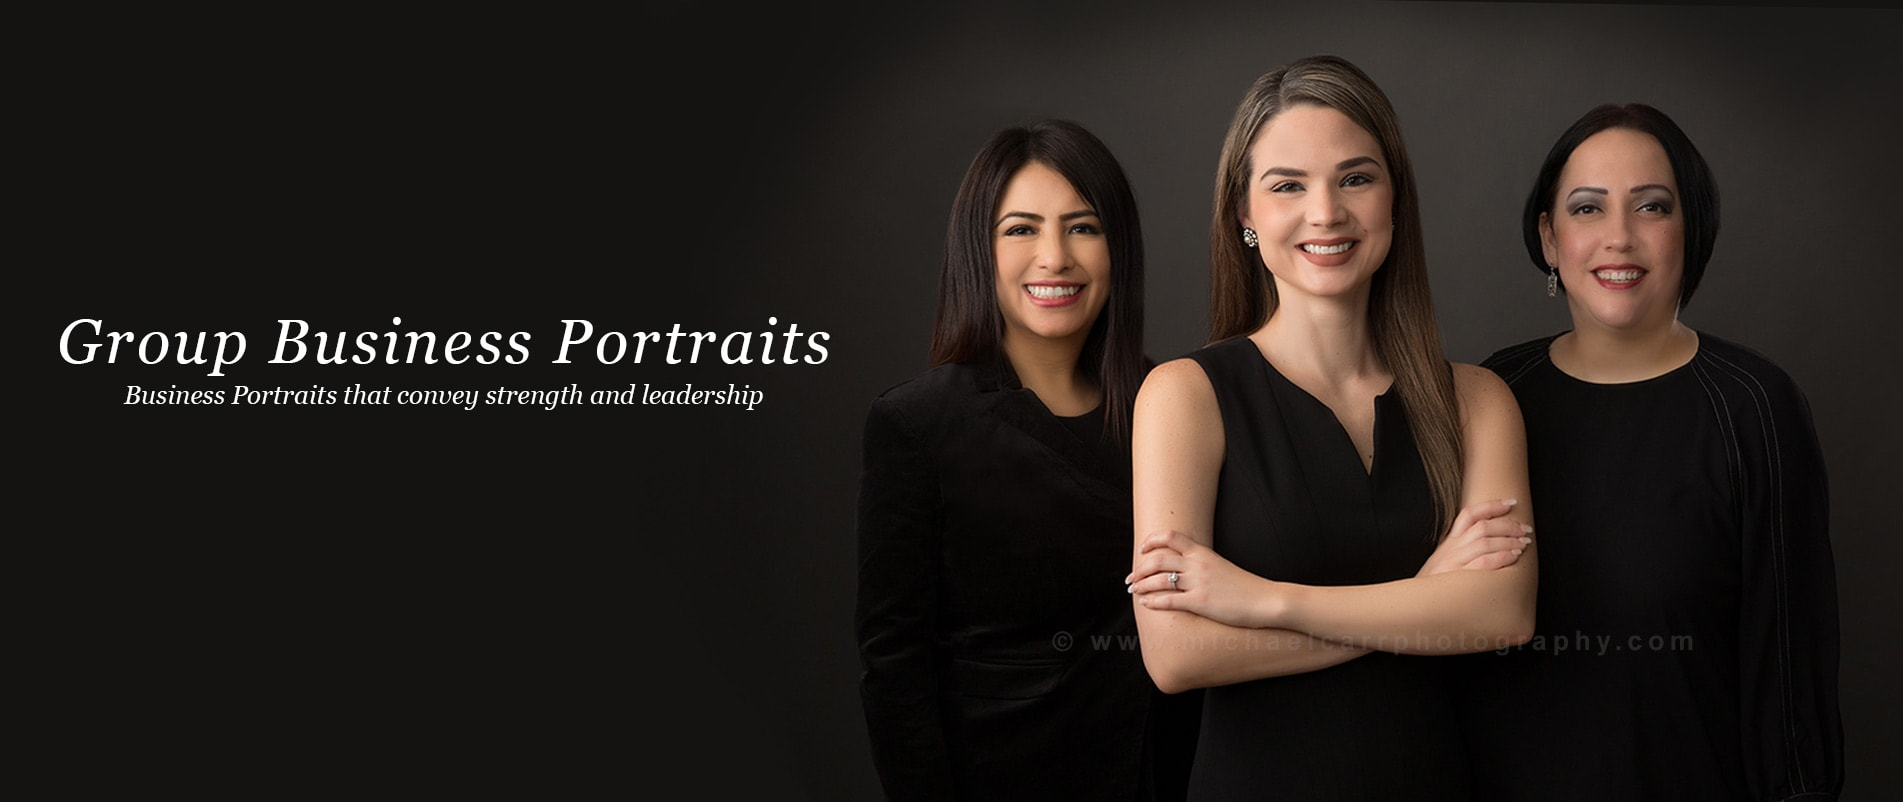 Corporate Group Business Portraits